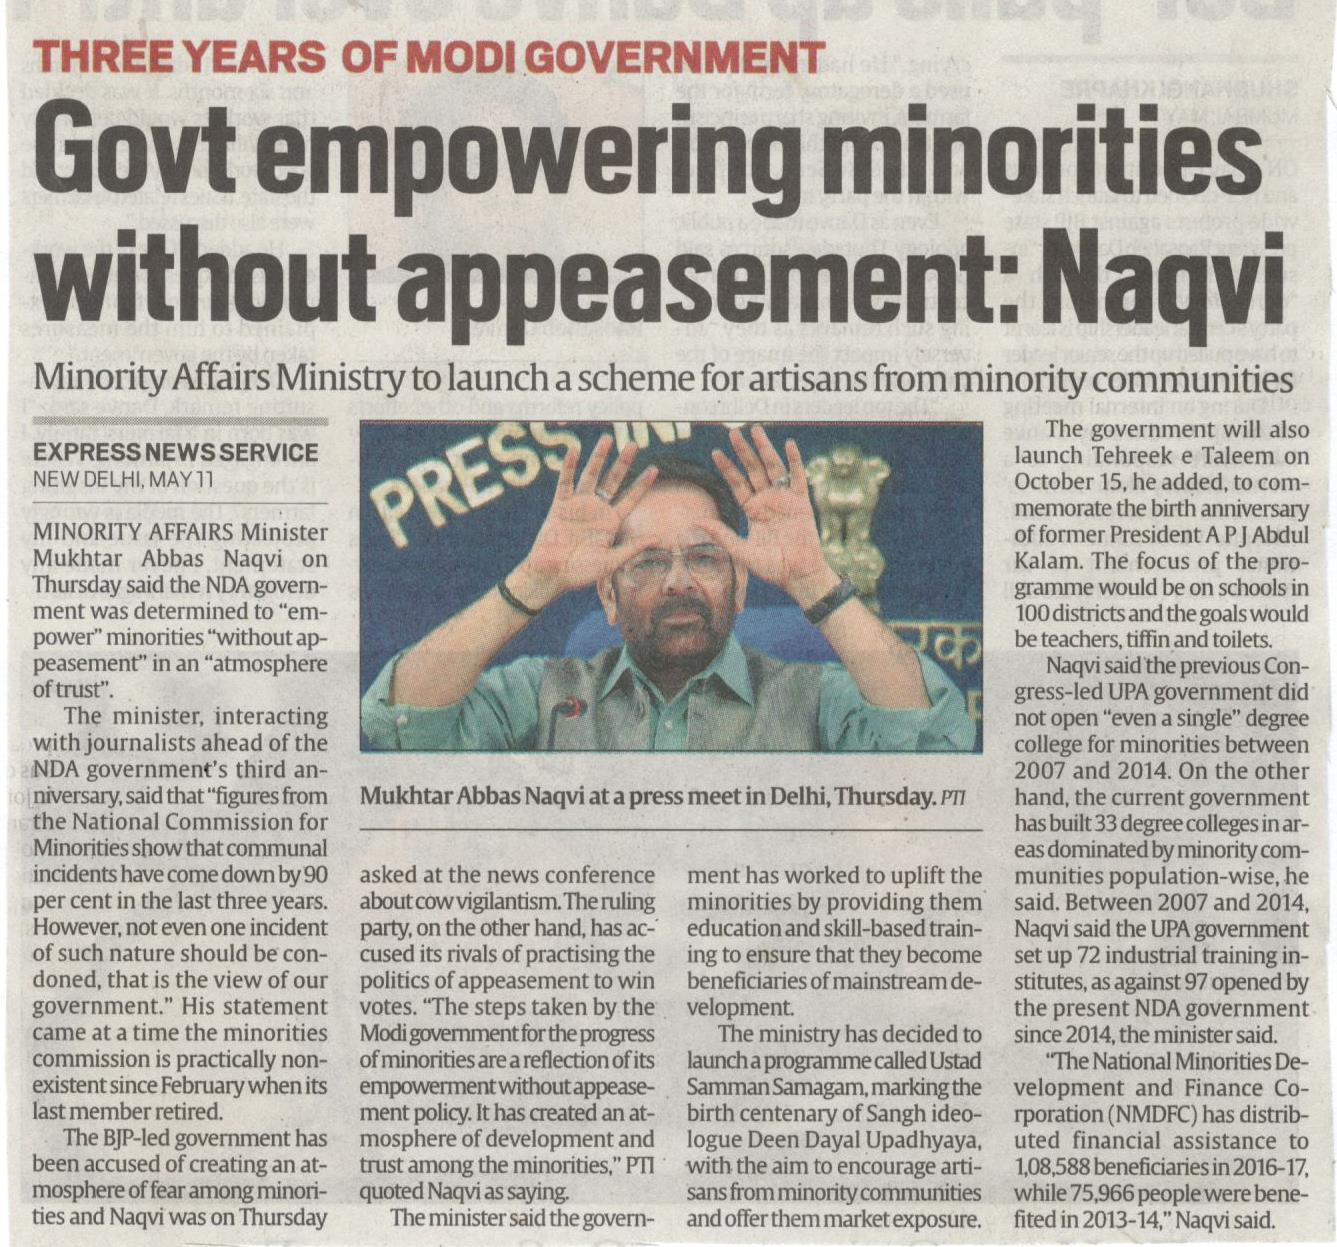 The Indian Express 12 may, 2017 | Ministry of Minority